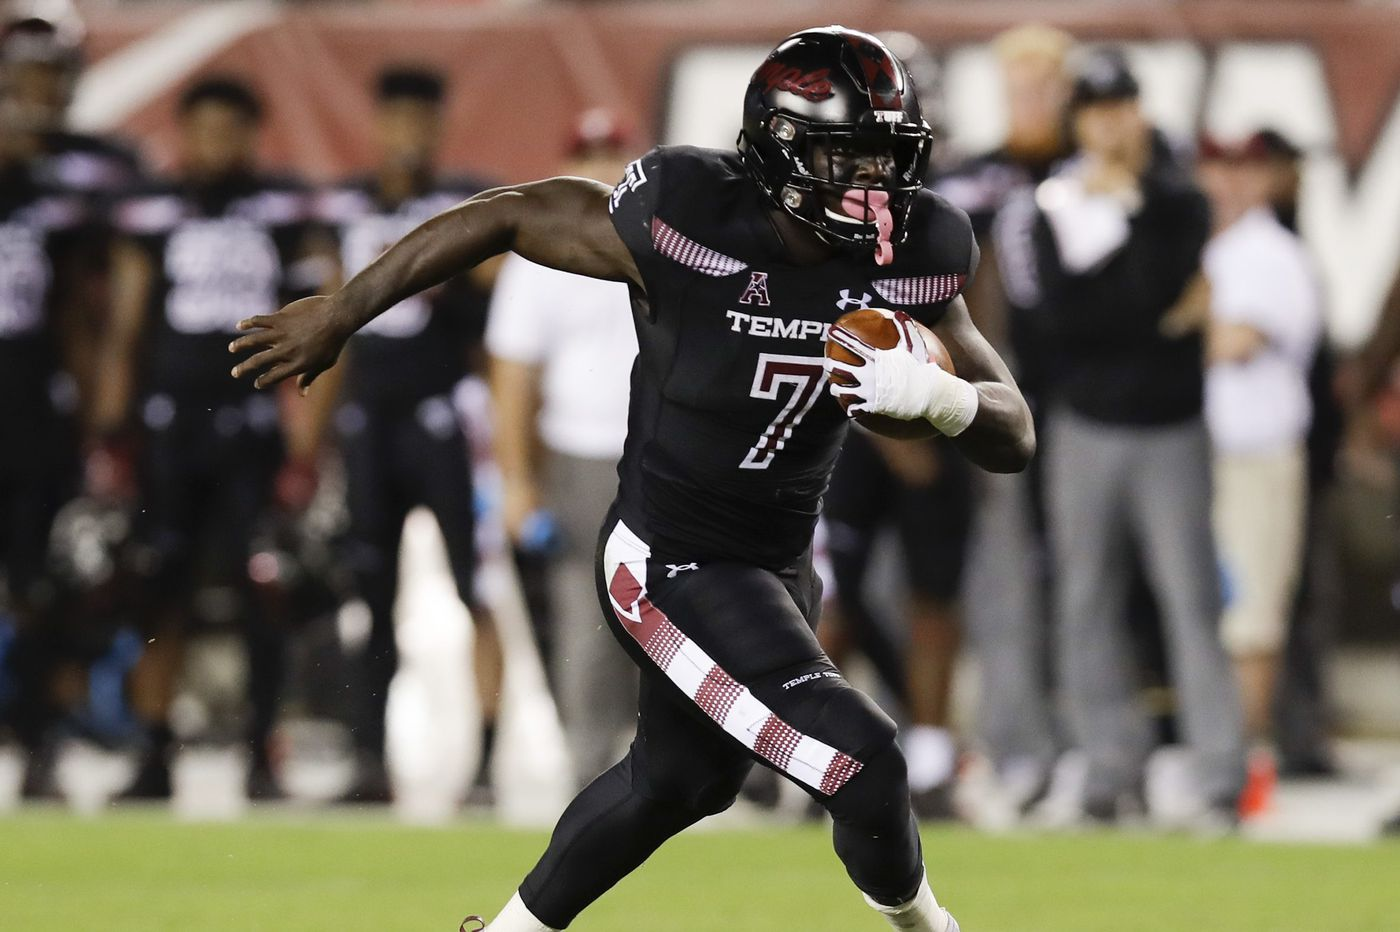 Temple's Ryquell Armstead looking ahead after record-setting performance against Houston